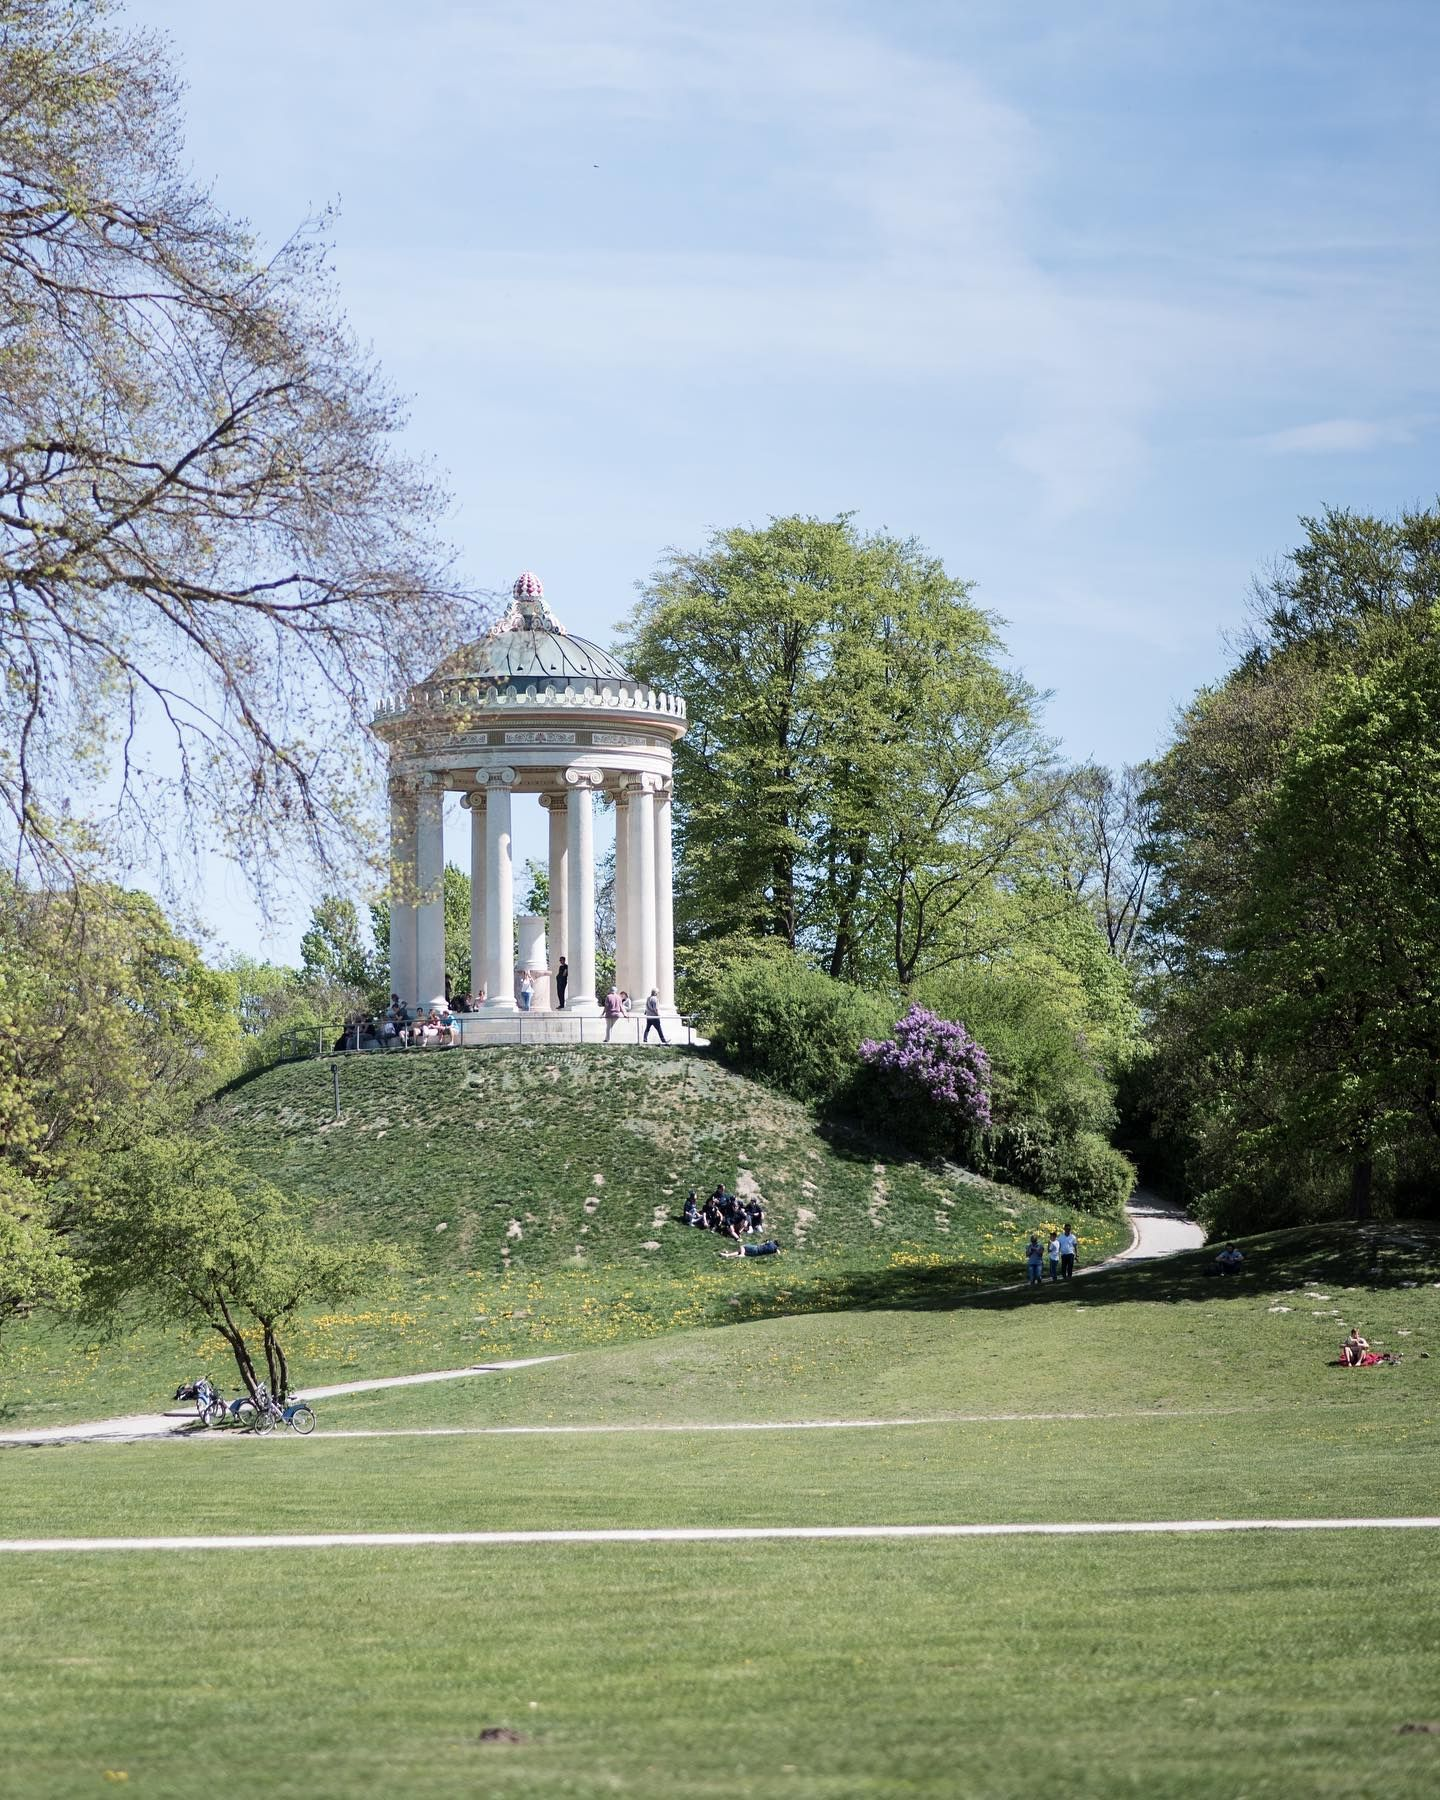 Have A Wonderful Friday Here Is Our Munich Insider Tip Of The Week The English Garden Der Englische Garten In Munich Is On In 2020 English Garden Urban Park Wonder